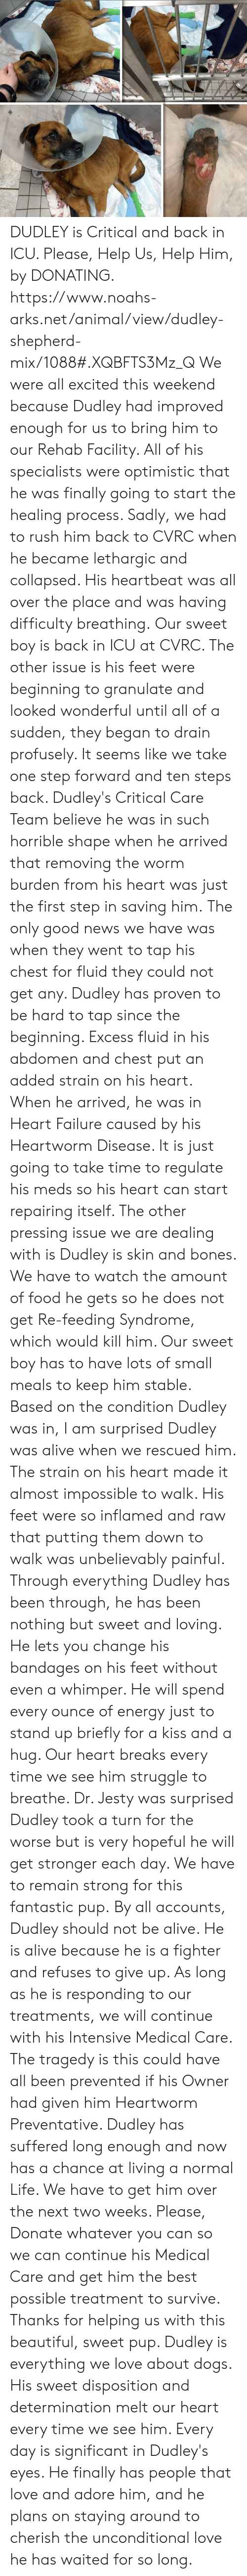 Alive, Beautiful, and Bones: DUDLEY is Critical and back in ICU.  Please, Help Us, Help Him, by DONATING.  https://www.noahs-arks.net/animal/view/dudley-shepherd-mix/1088#.XQBFTS3Mz_Q  We were all excited this weekend because Dudley had improved enough for us to bring him to our Rehab Facility.  All of his specialists were optimistic that he was finally going to start the healing process.  Sadly, we had to rush him back to CVRC when he became lethargic and collapsed.  His heartbeat was all over the place and was having difficulty breathing.   Our sweet boy is back in ICU at CVRC.   The other issue is his feet were beginning to granulate and looked wonderful until all of a sudden, they began to drain profusely.   It seems like we take one step forward and ten steps back.  Dudley's Critical Care Team believe he was in such horrible shape when he arrived that removing the worm burden from his heart was just the first step in saving him.   The only good news we have was when they went to tap his chest for fluid they could not get any.   Dudley has proven to be hard to tap since the beginning.  Excess fluid in his abdomen and chest put an added strain on his heart.   When he arrived, he was in Heart Failure caused by his Heartworm Disease.  It is just going to take time to regulate his meds so his heart can start repairing itself.     The other pressing issue we are dealing with is Dudley is skin and bones.  We have to watch the amount of food he gets so he does not get Re-feeding Syndrome, which would kill him.  Our sweet boy has to have lots of small meals to keep him stable.    Based on the condition Dudley was in, I am surprised Dudley was alive when we rescued him.  The strain on his heart made it almost impossible to walk.  His feet were so inflamed and raw that putting them down to walk was unbelievably painful.     Through everything Dudley has been through, he has been nothing but sweet and loving.   He lets you change his bandages on his feet without even a whi